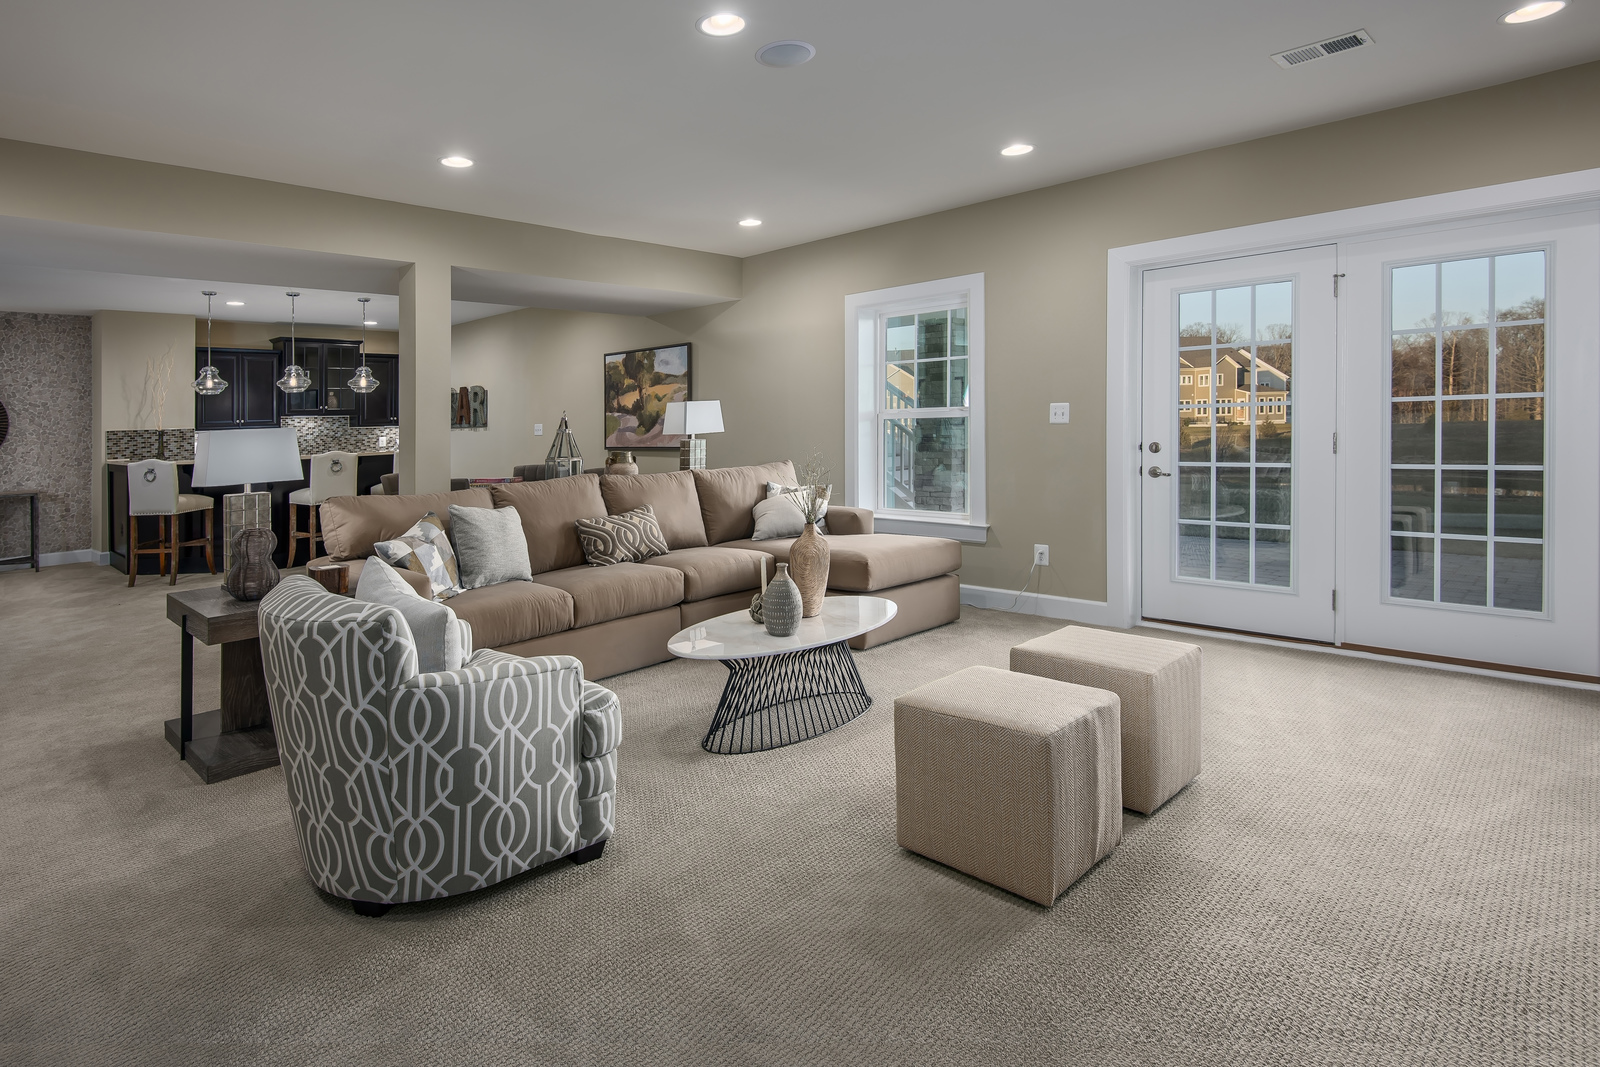 Now even more space to entertain with every home including a finished basement.